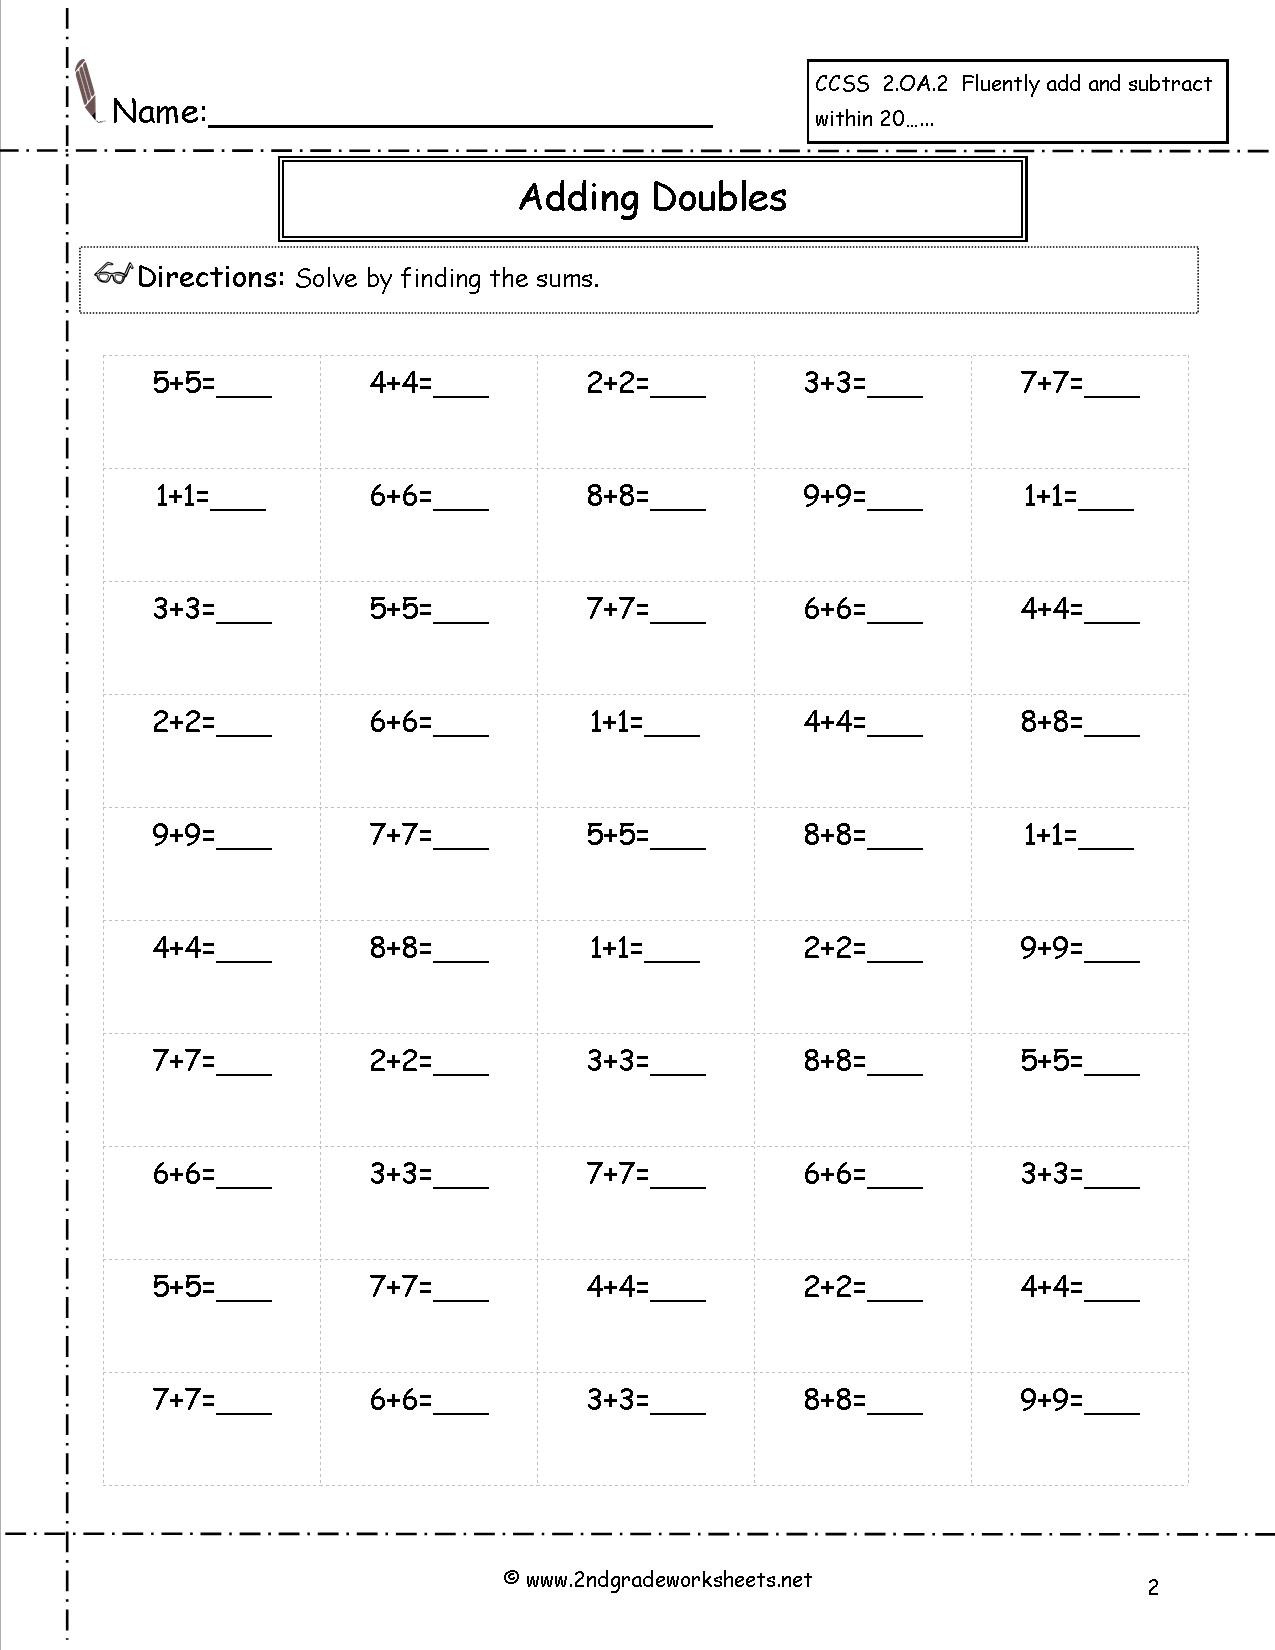 2nd Grade Measurement Worksheets Free Fifth Grade Math Homework Giving Instructions Worksheets